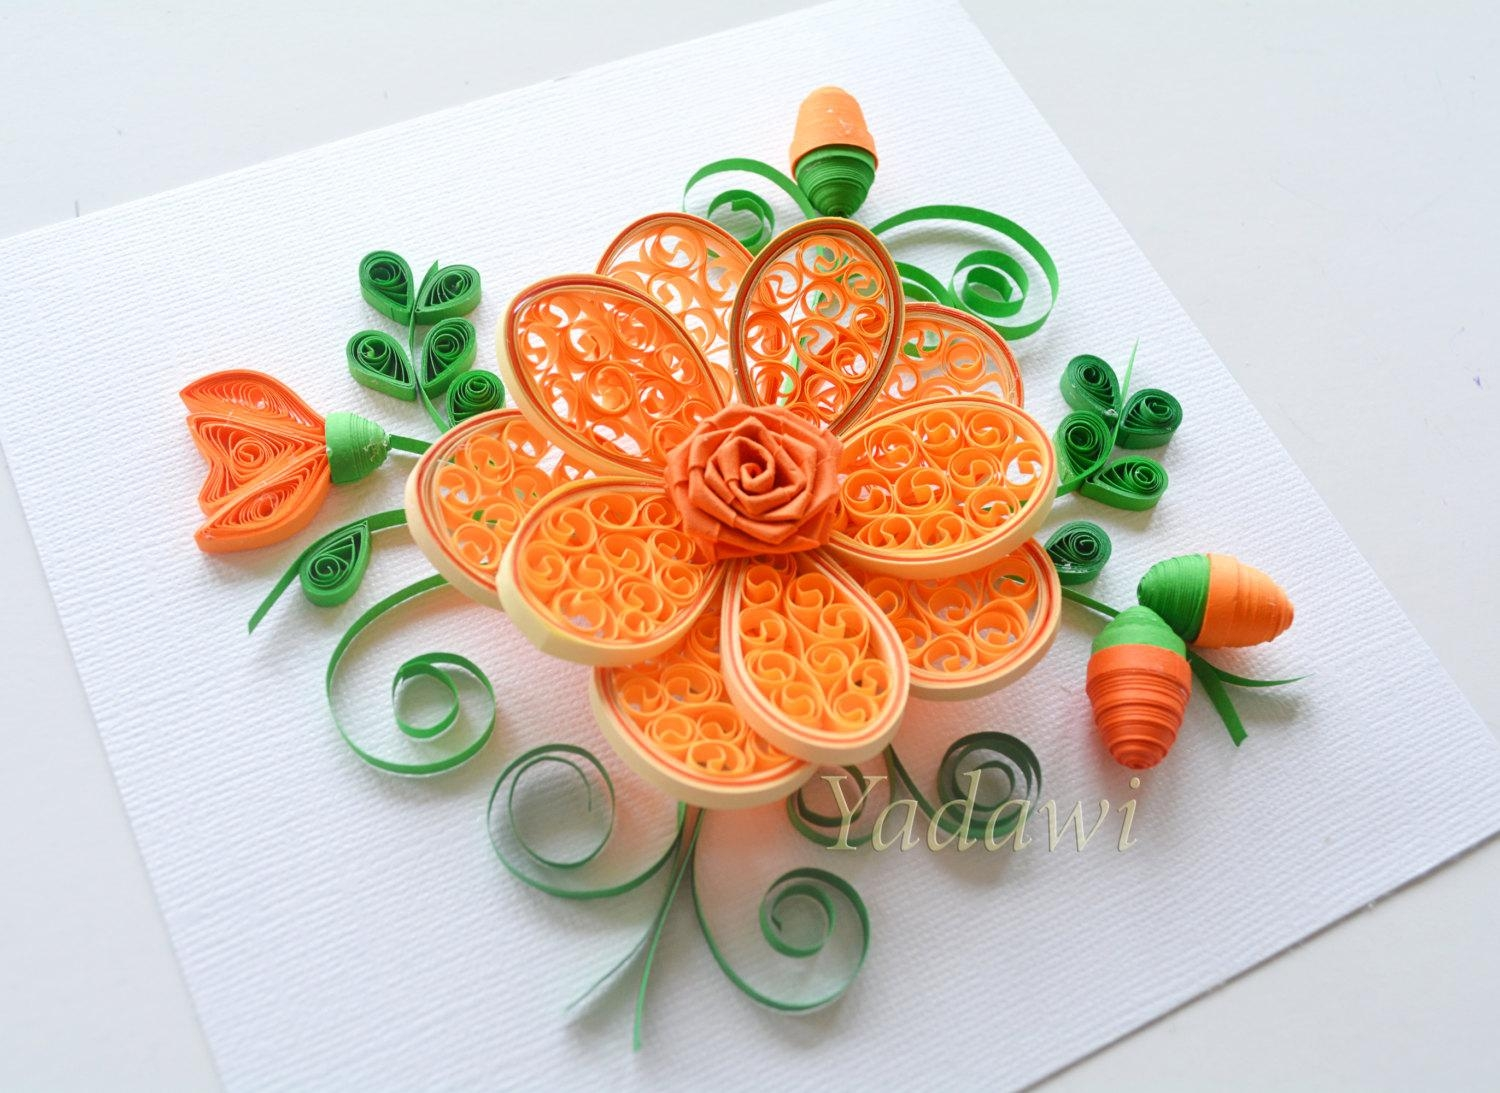 Quilled Paper Art Quilled Flower Paper Wall Art 3D Paper With Regard To 3D Paper Wall Art (View 14 of 20)